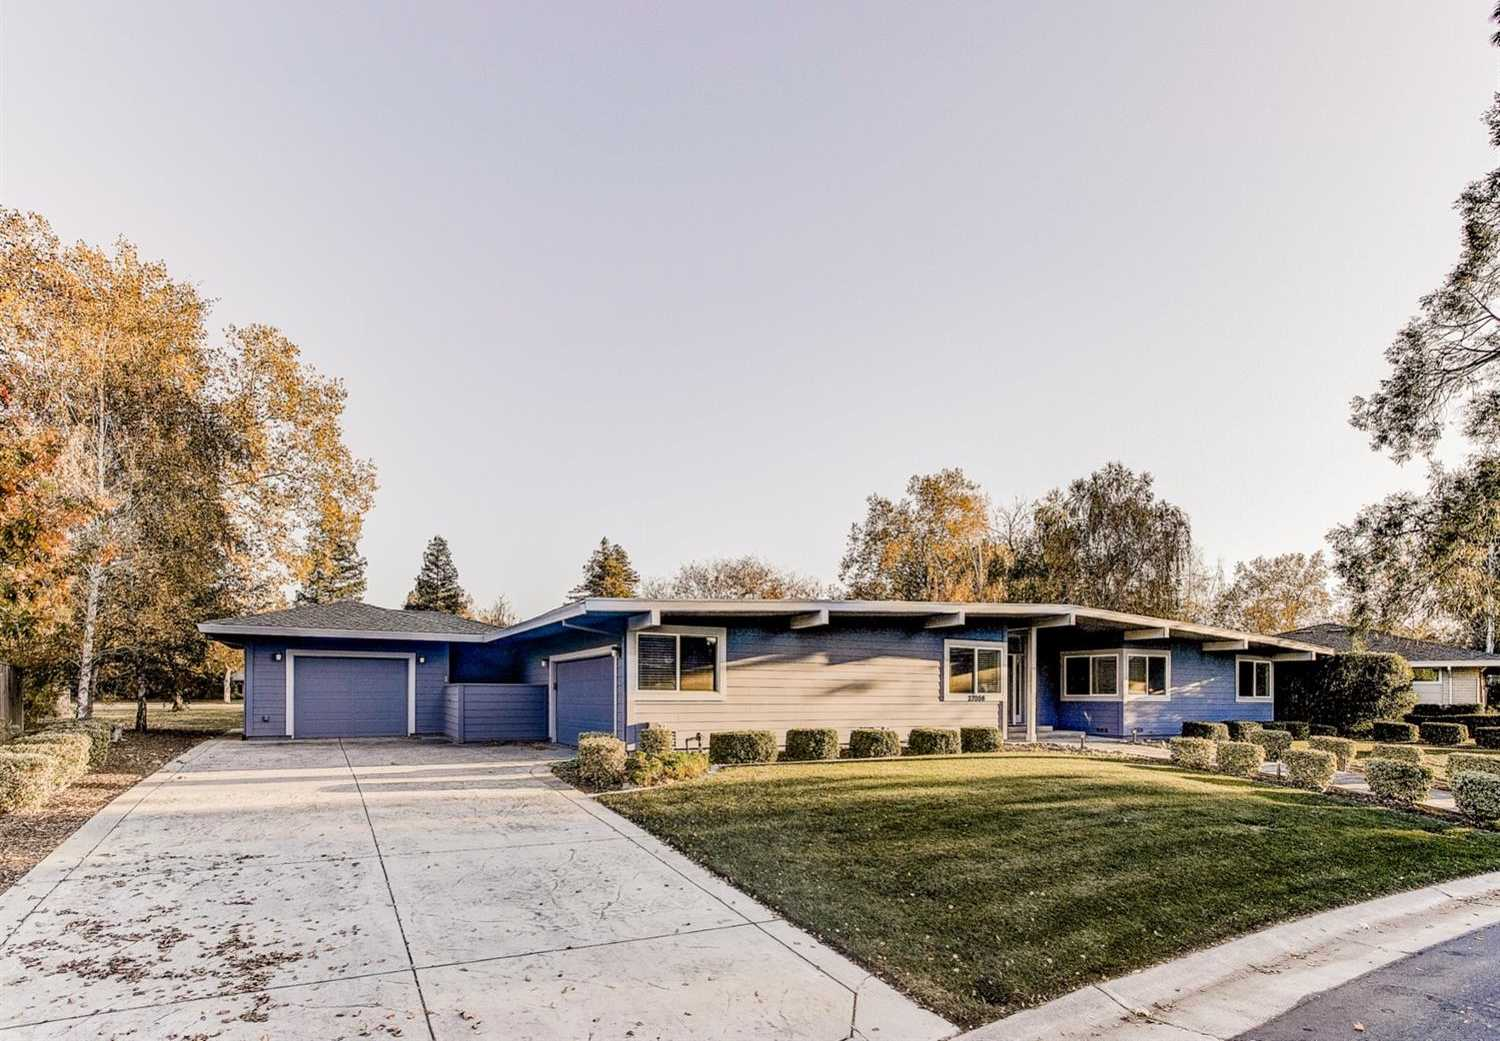 $1,035,000 - 3Br/3Ba -  for Sale in El Macero